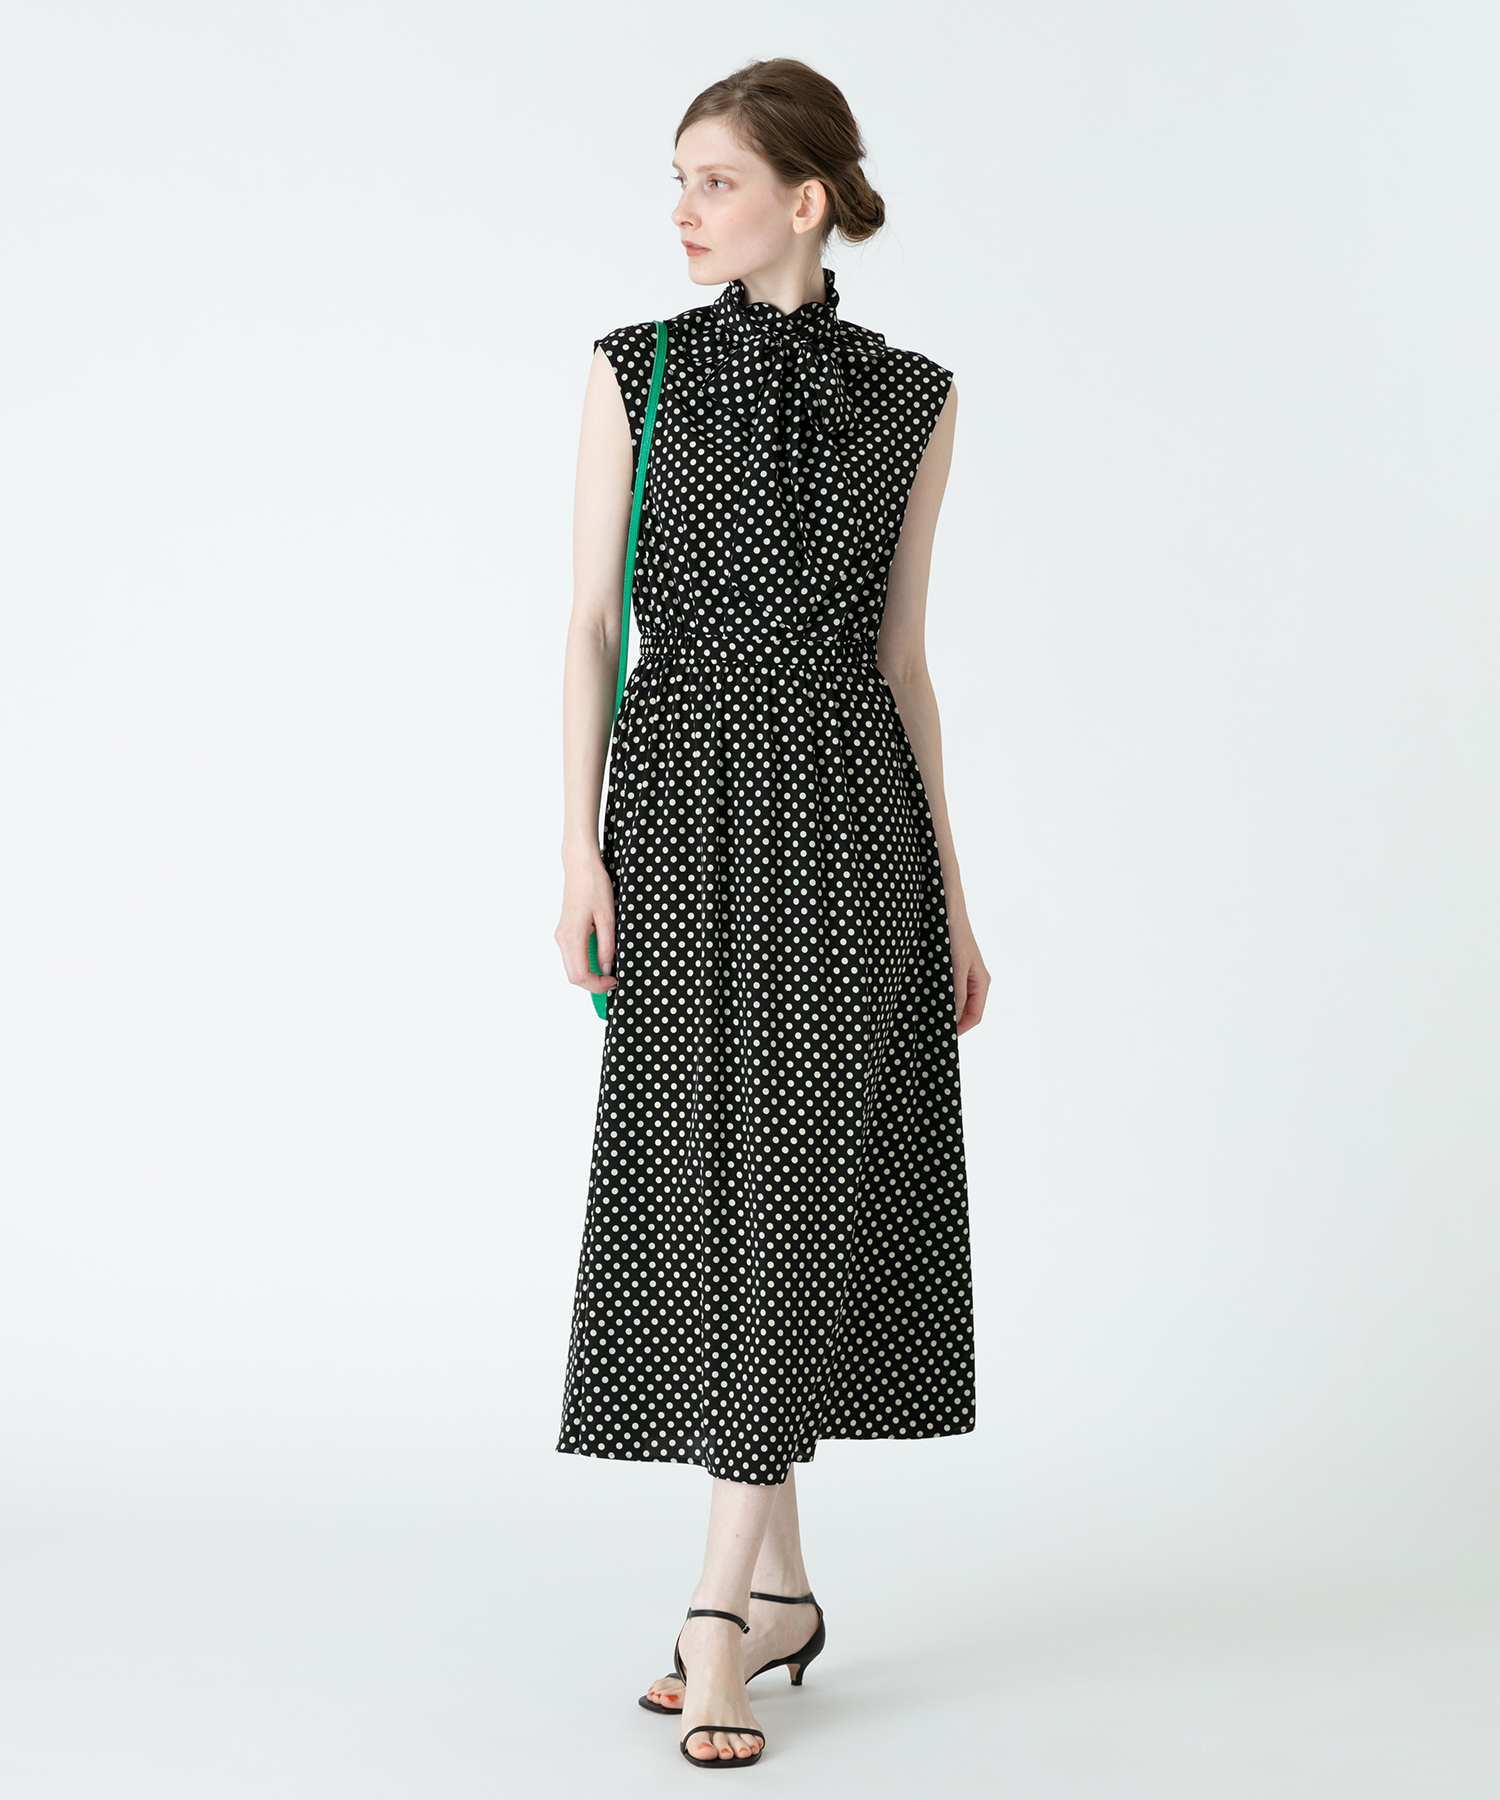 【LOULOU WILLOUGHBY】デシンドットノースリーブワンピース